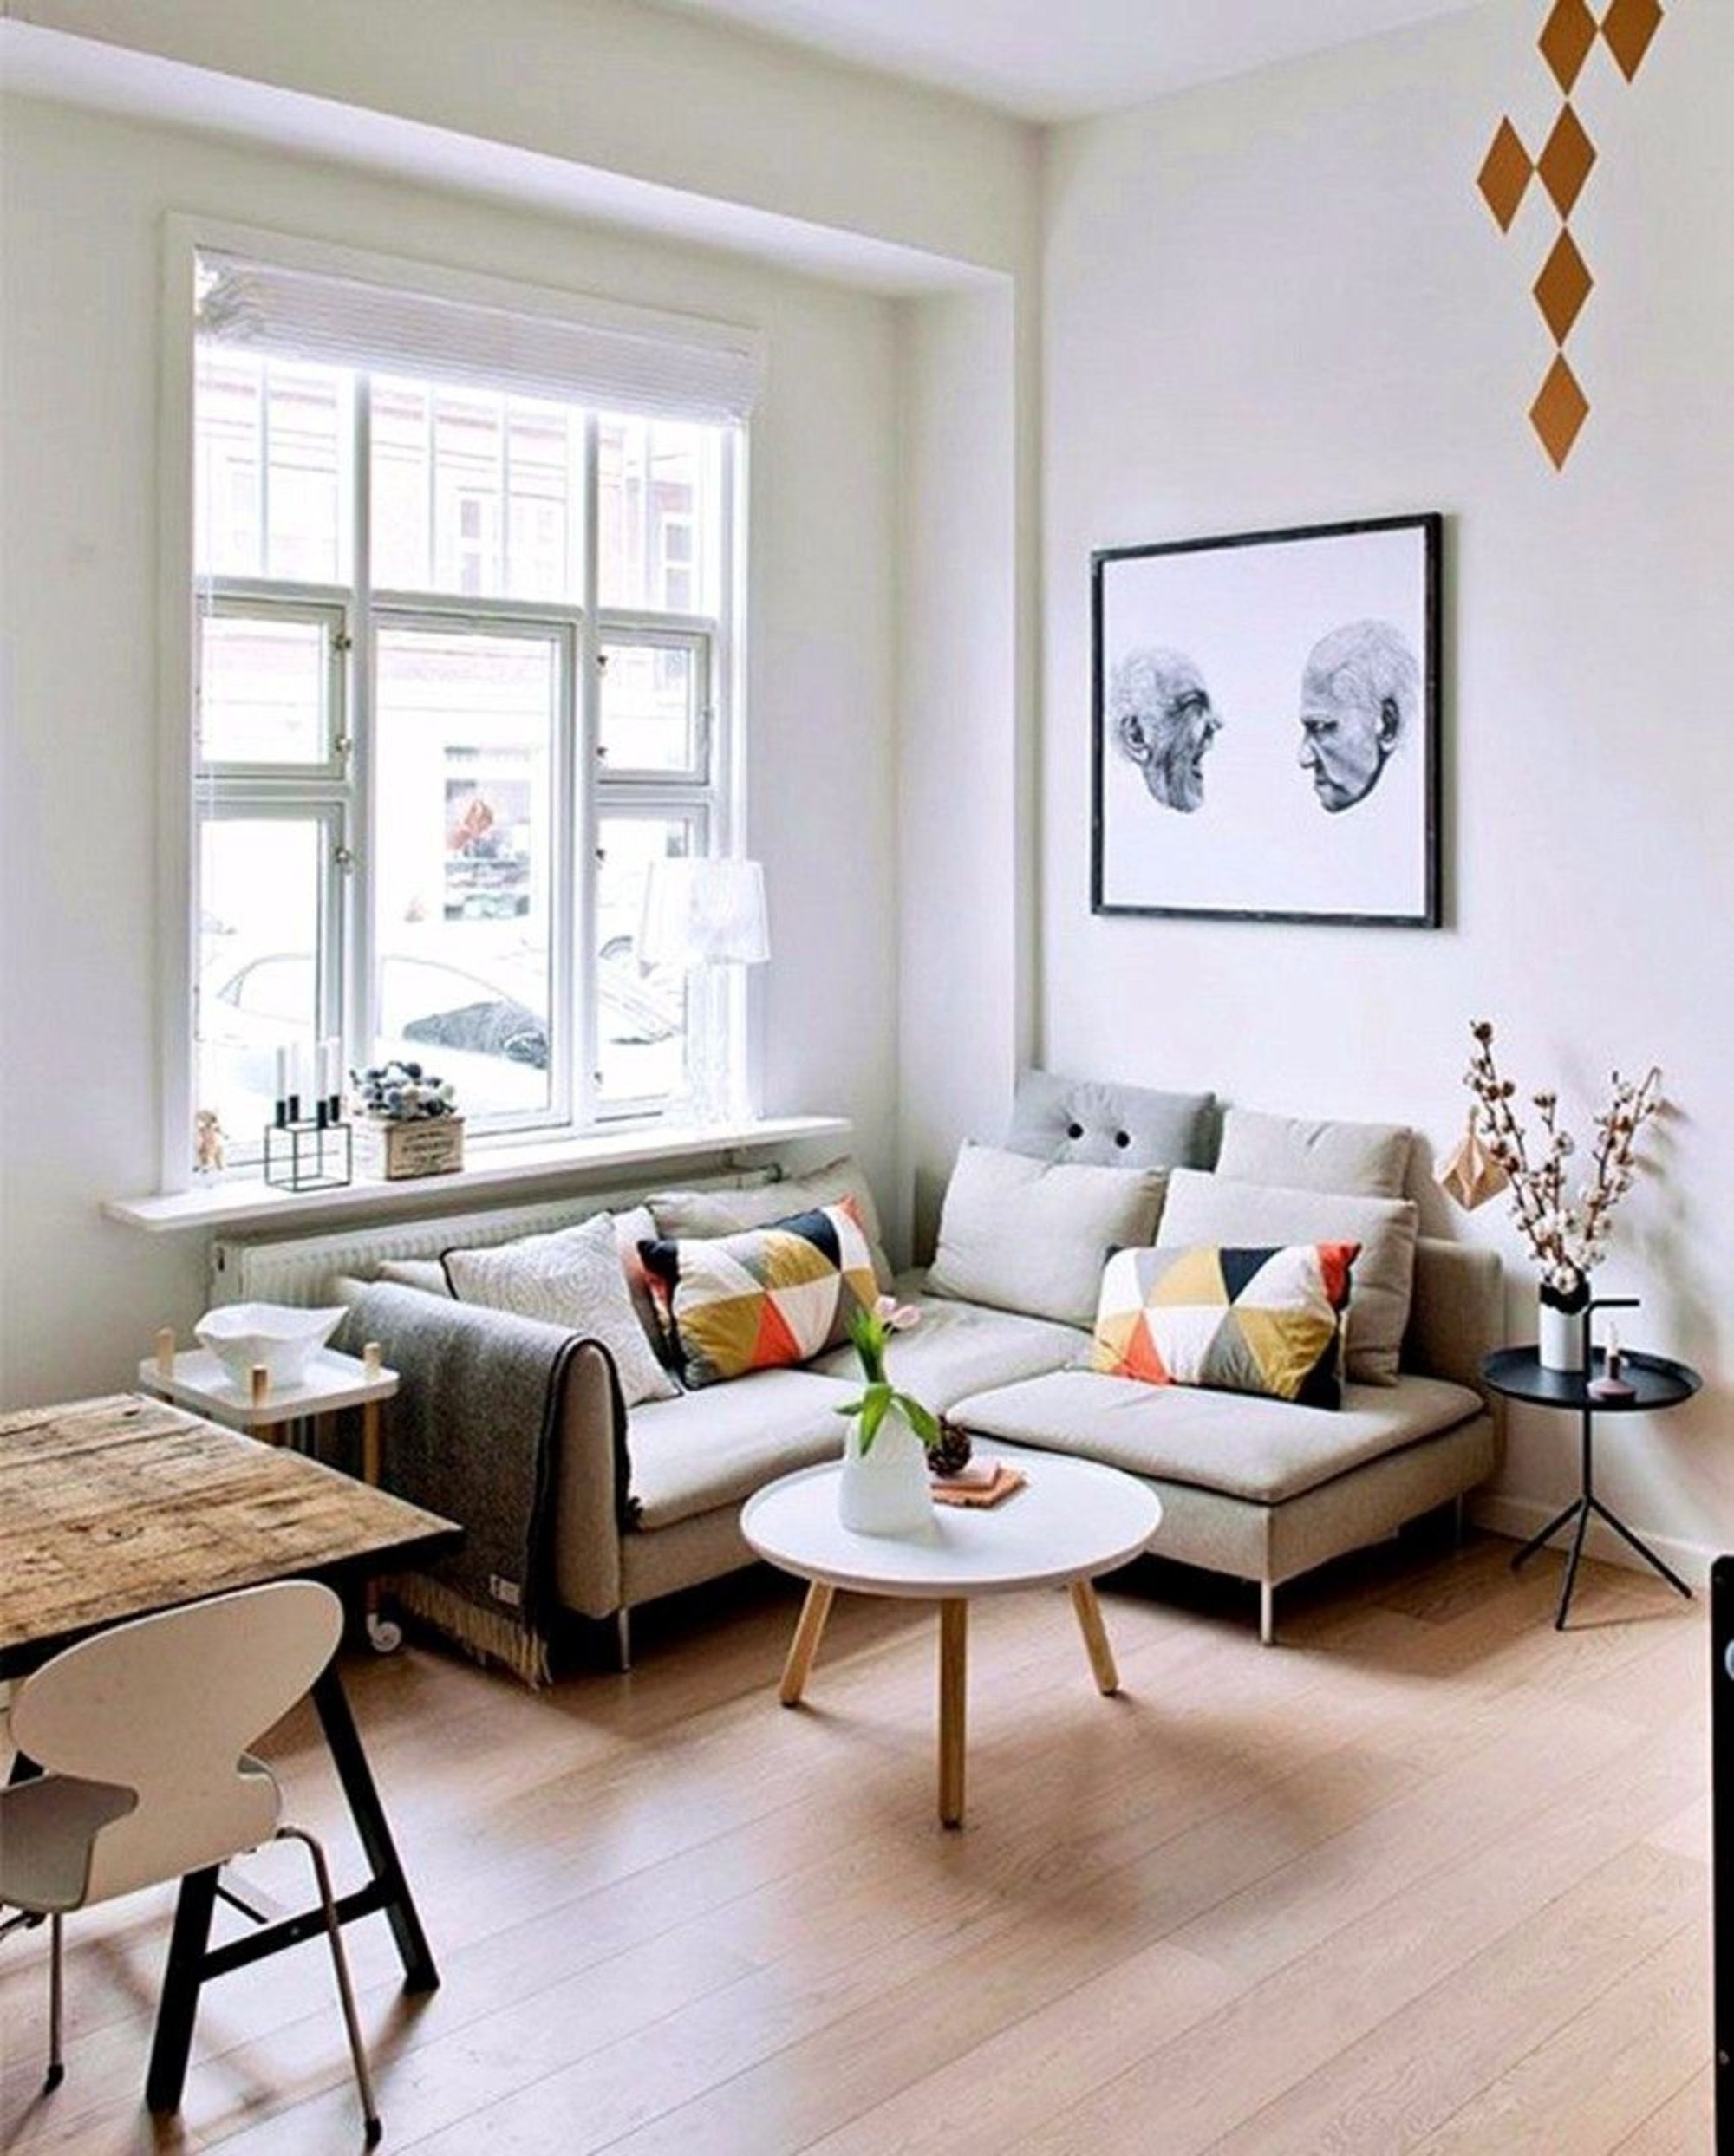 Comment agencer son salon dans un petit appartement ? Blog Rhinov